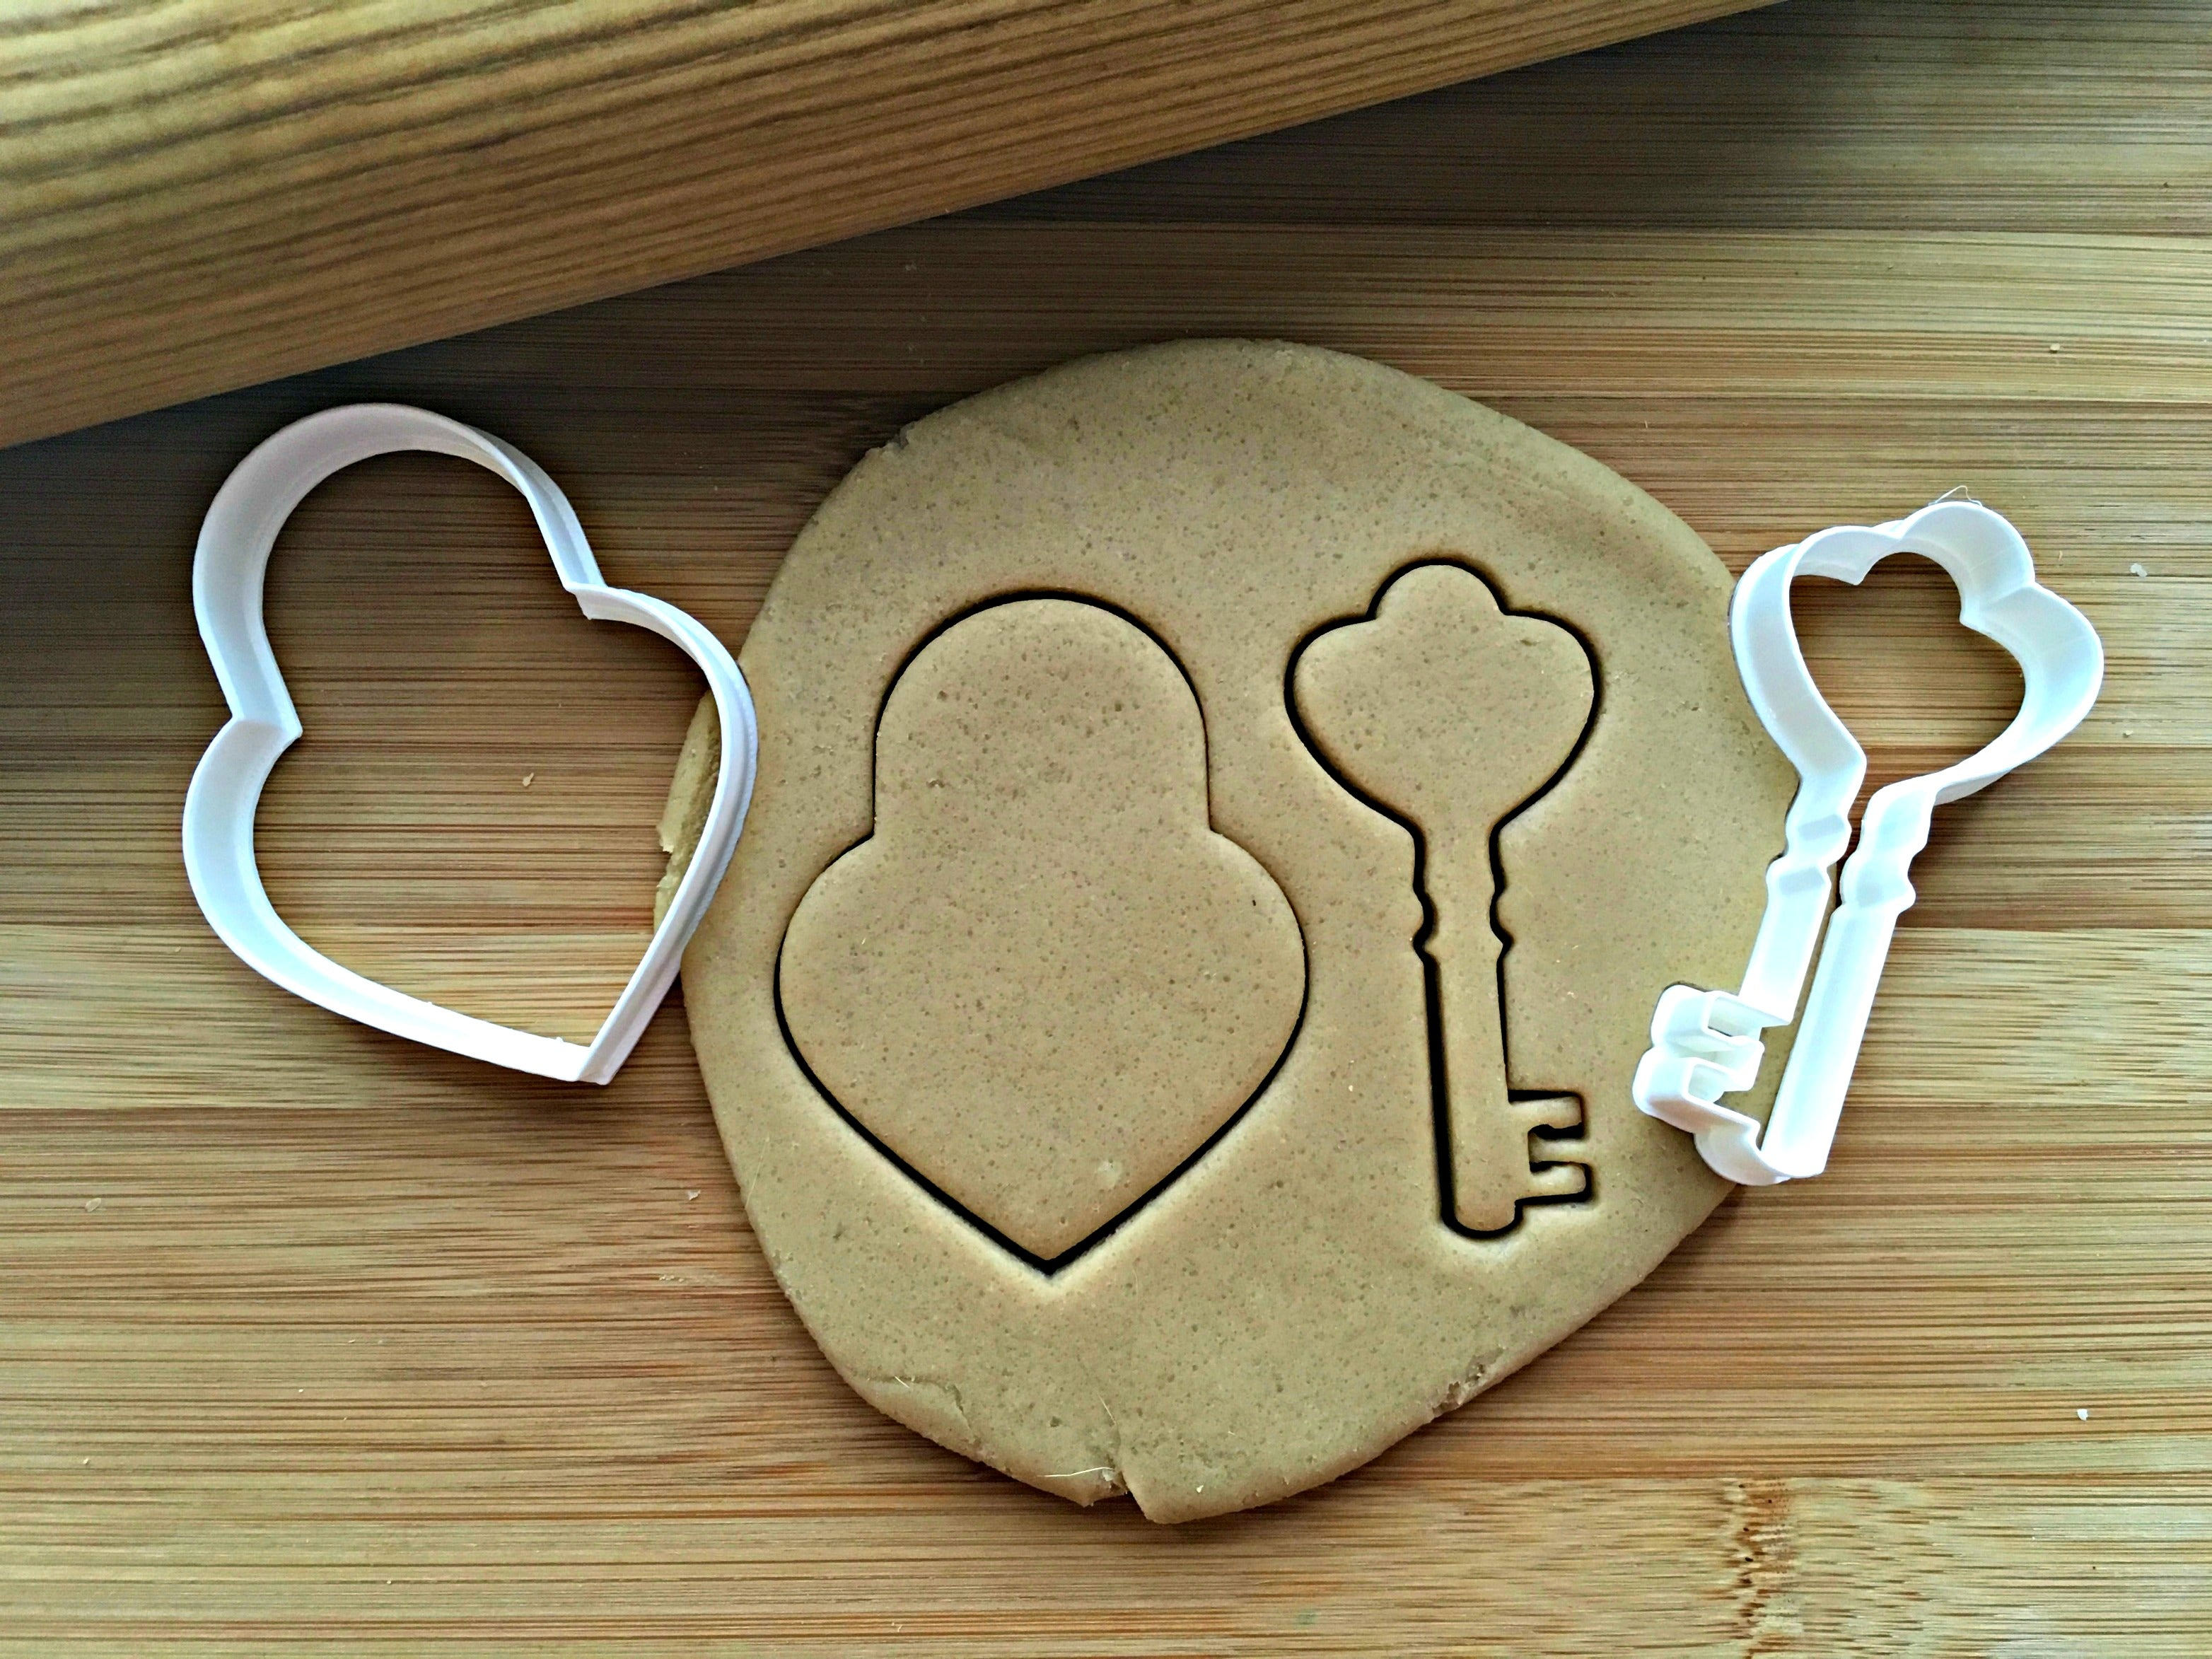 Set of 2 Heart Lock and Key Cookie Cutters/Dishwasher Safe